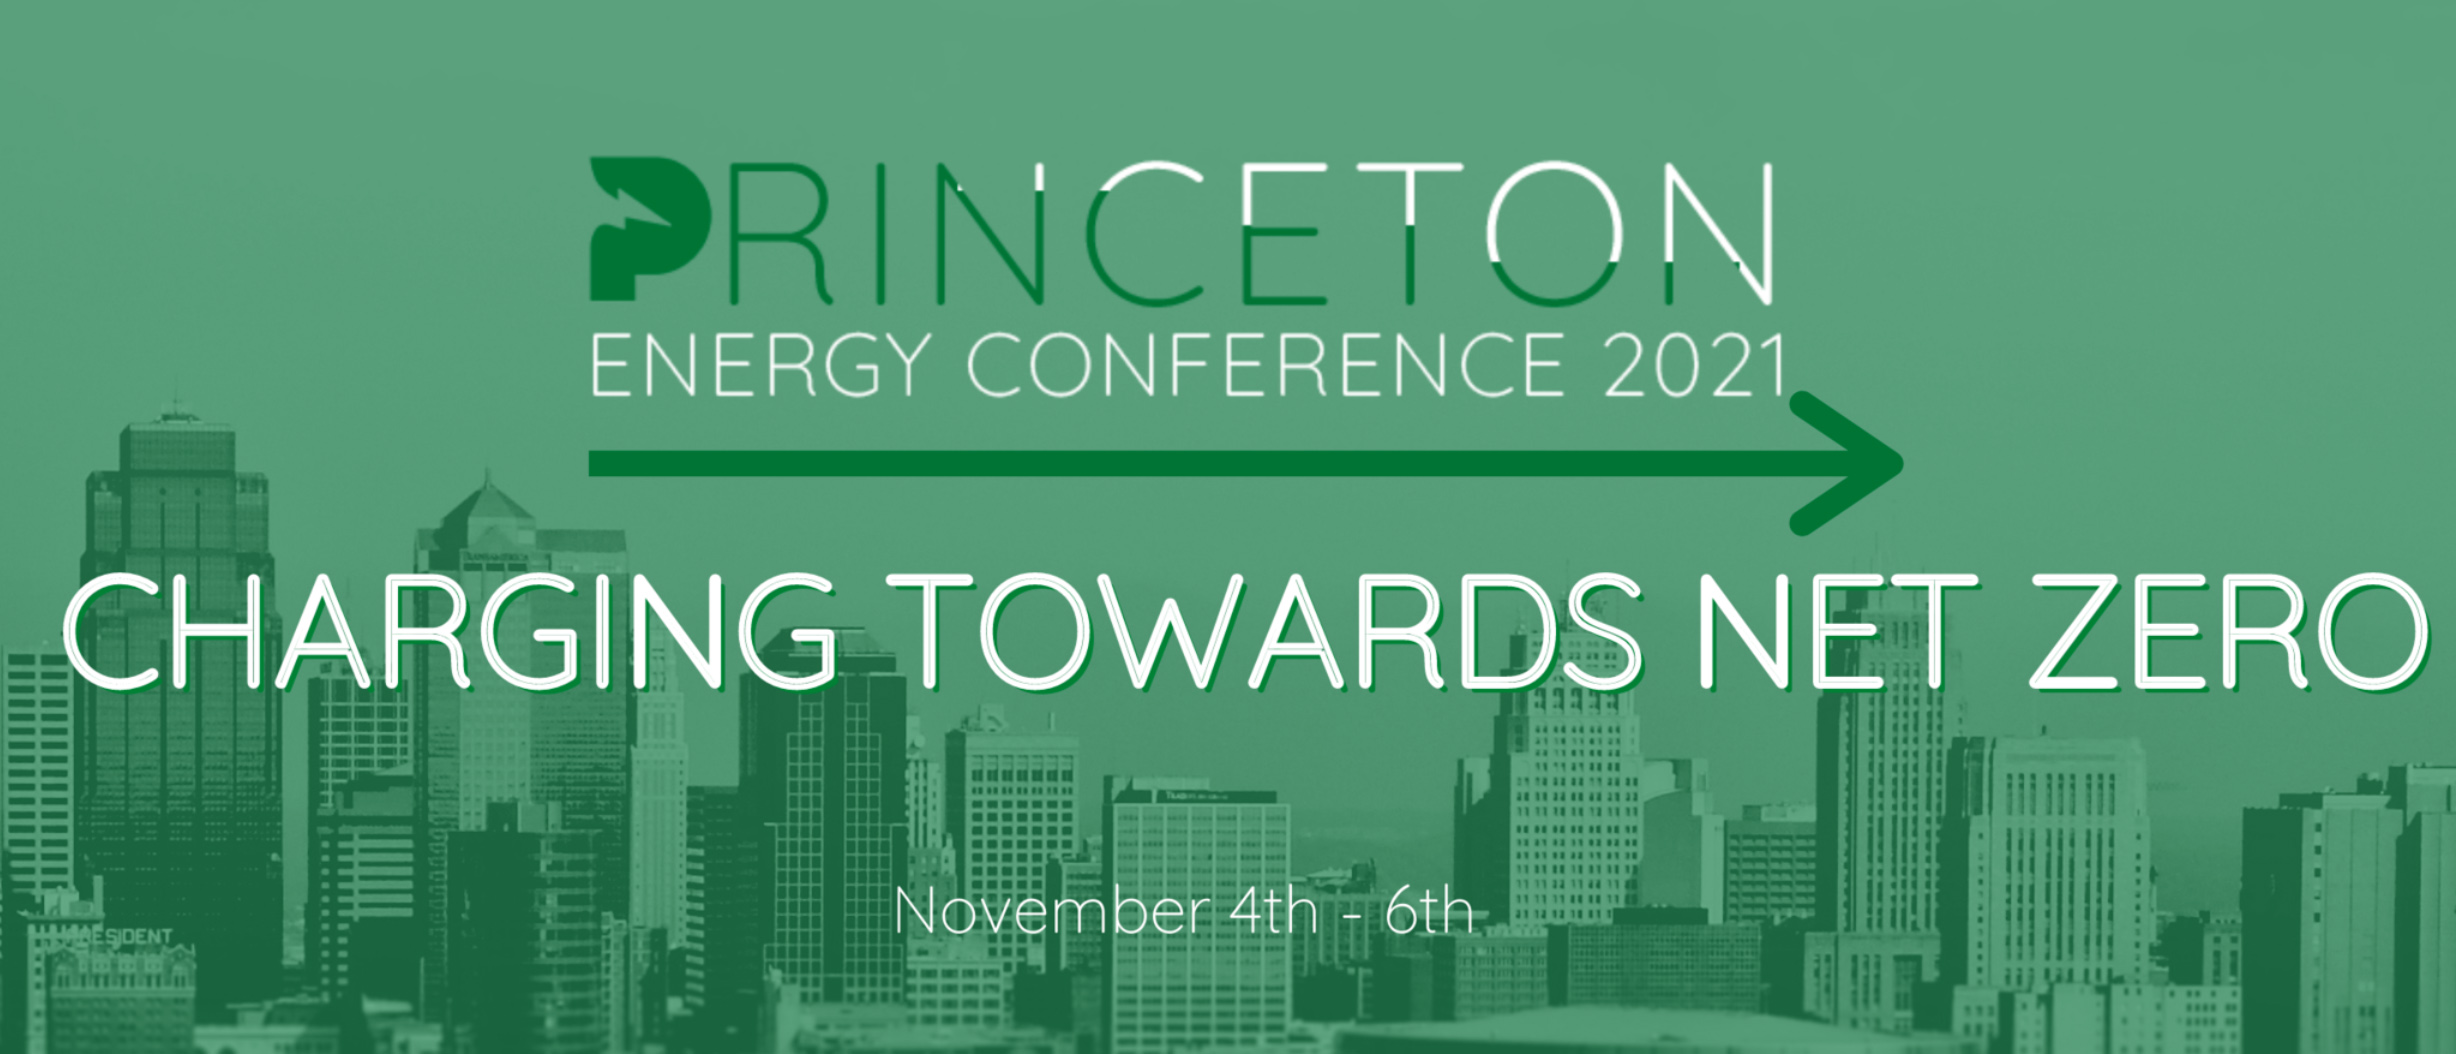 """The virtual conference """"Charging towards Net Zero"""" brings together industry professionals, researchers, academics, investors, analysts, students, and other community members that are spirited about the future of the energy industry and new technologies. November 4-6"""